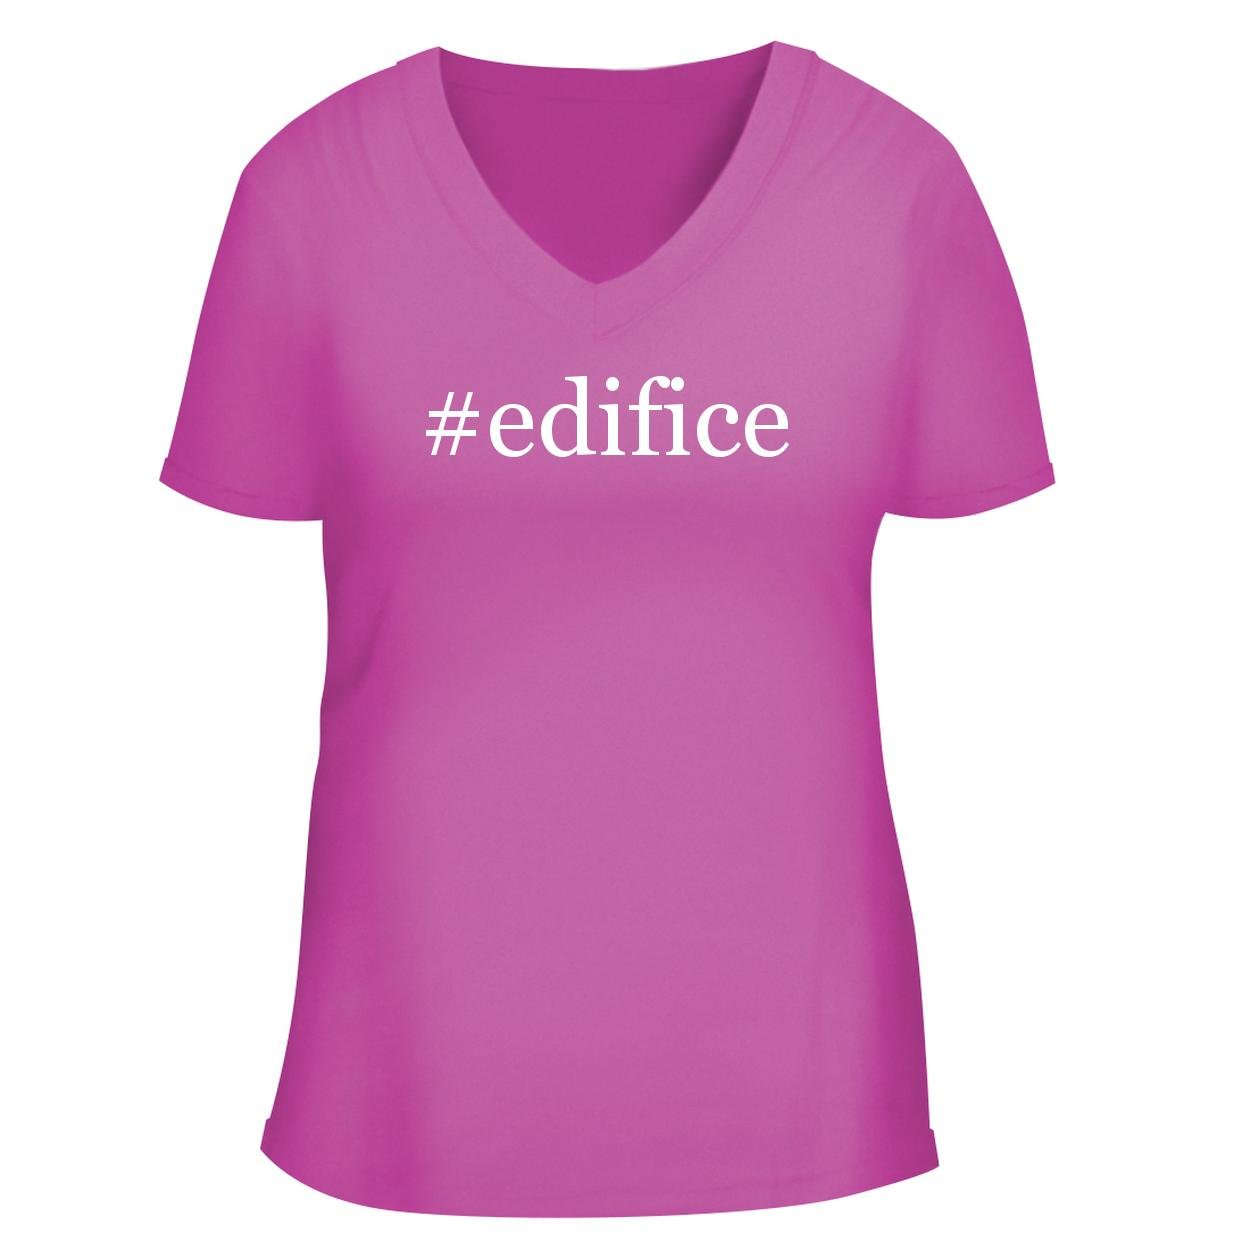 BH Cool Designs #Edifice - Cute Women's V Neck Graphic Tee, Fuchsia, Medium